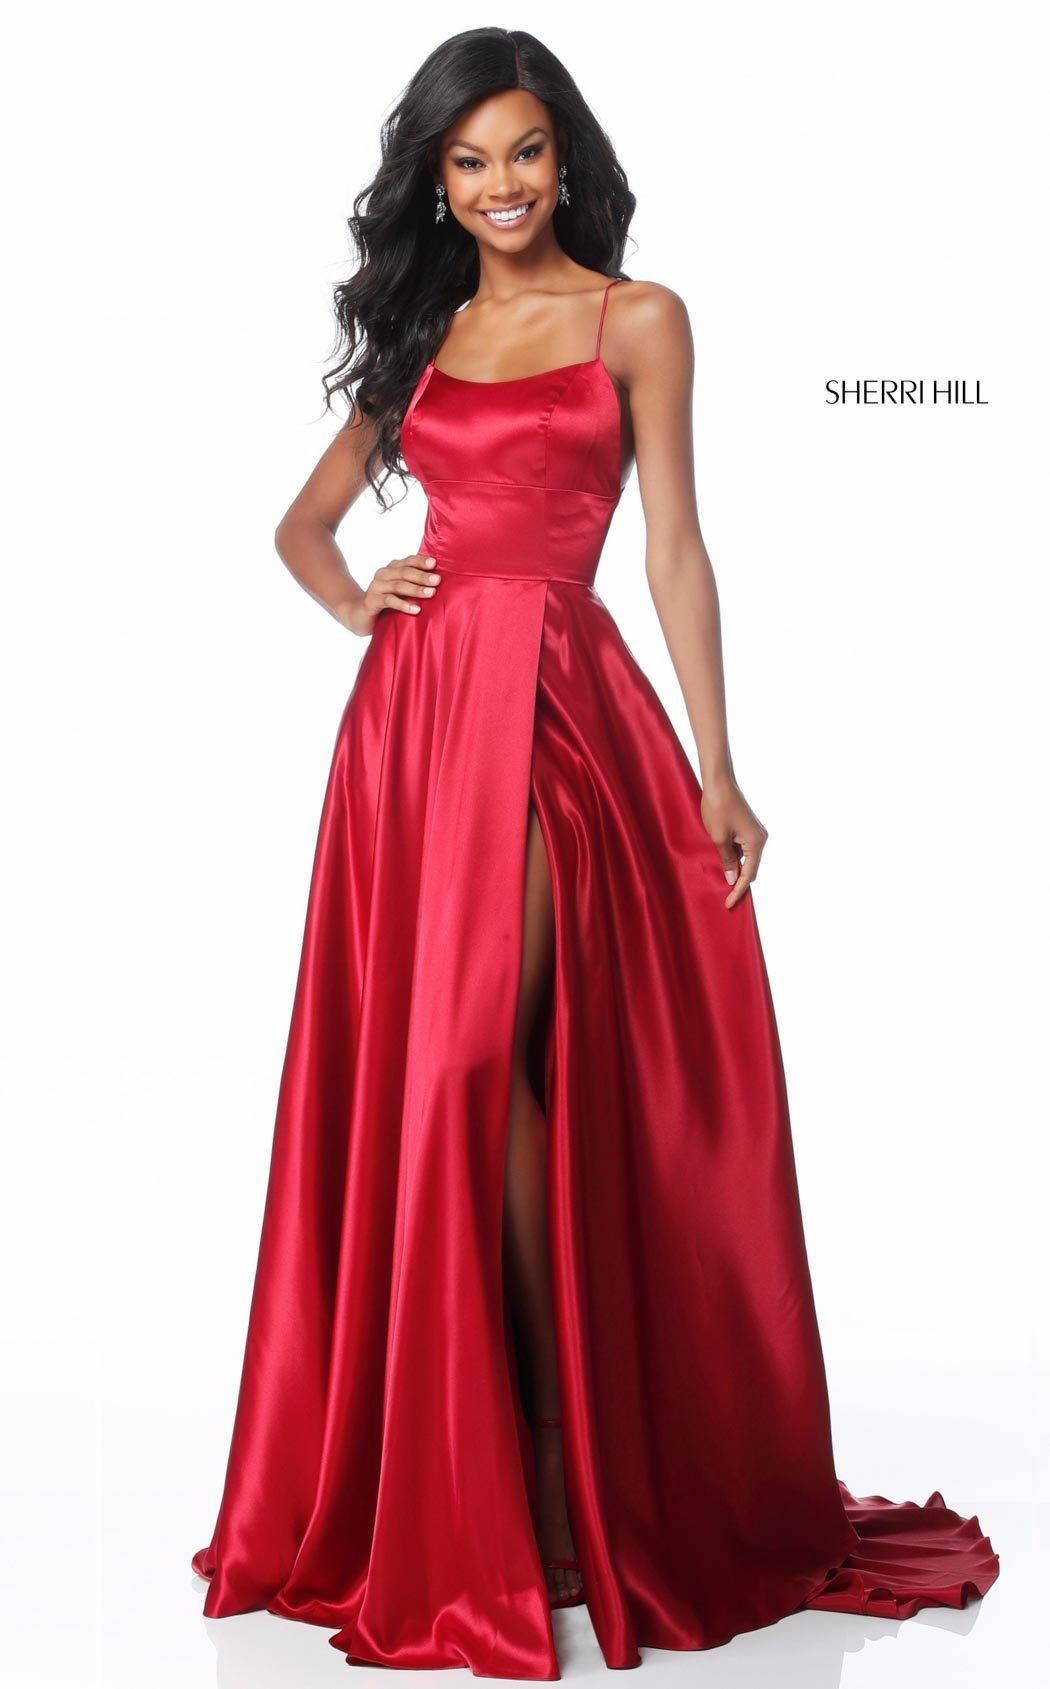 Sherri hill in outfits pinterest prom dresses